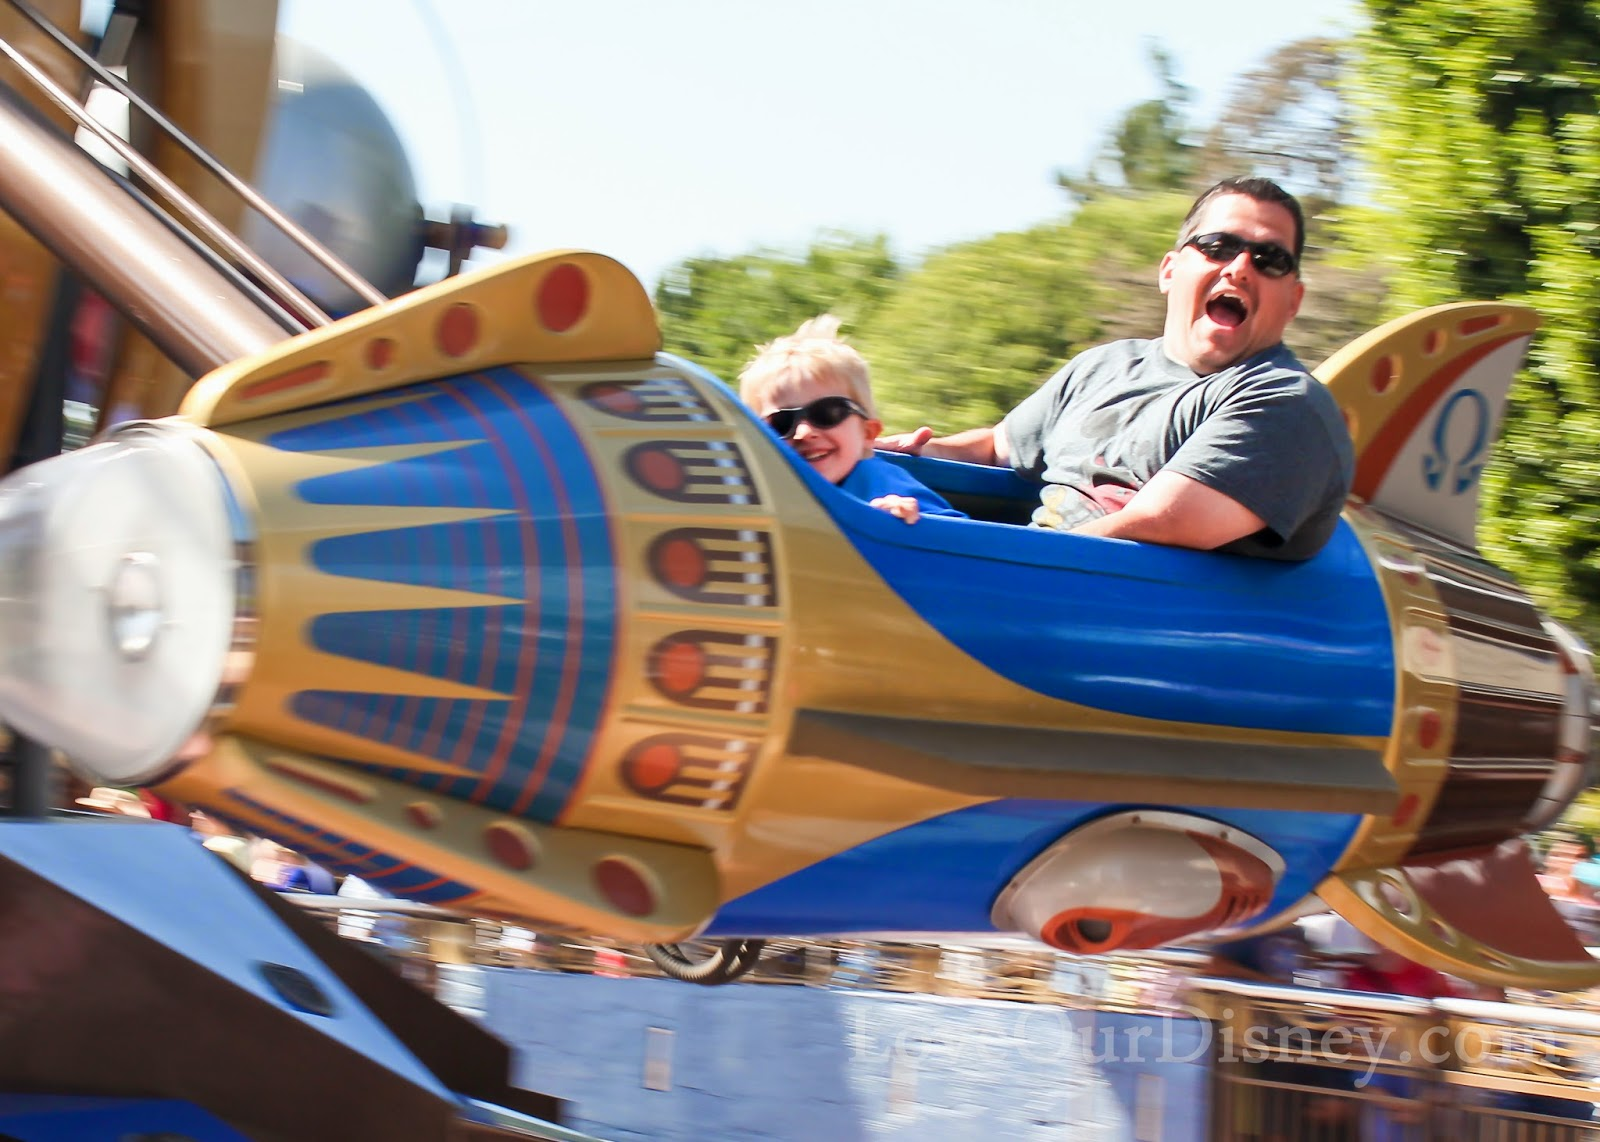 Preschoolers love the Astro Orbiter and these other rides at Disneyland. LoveOurDisney.com